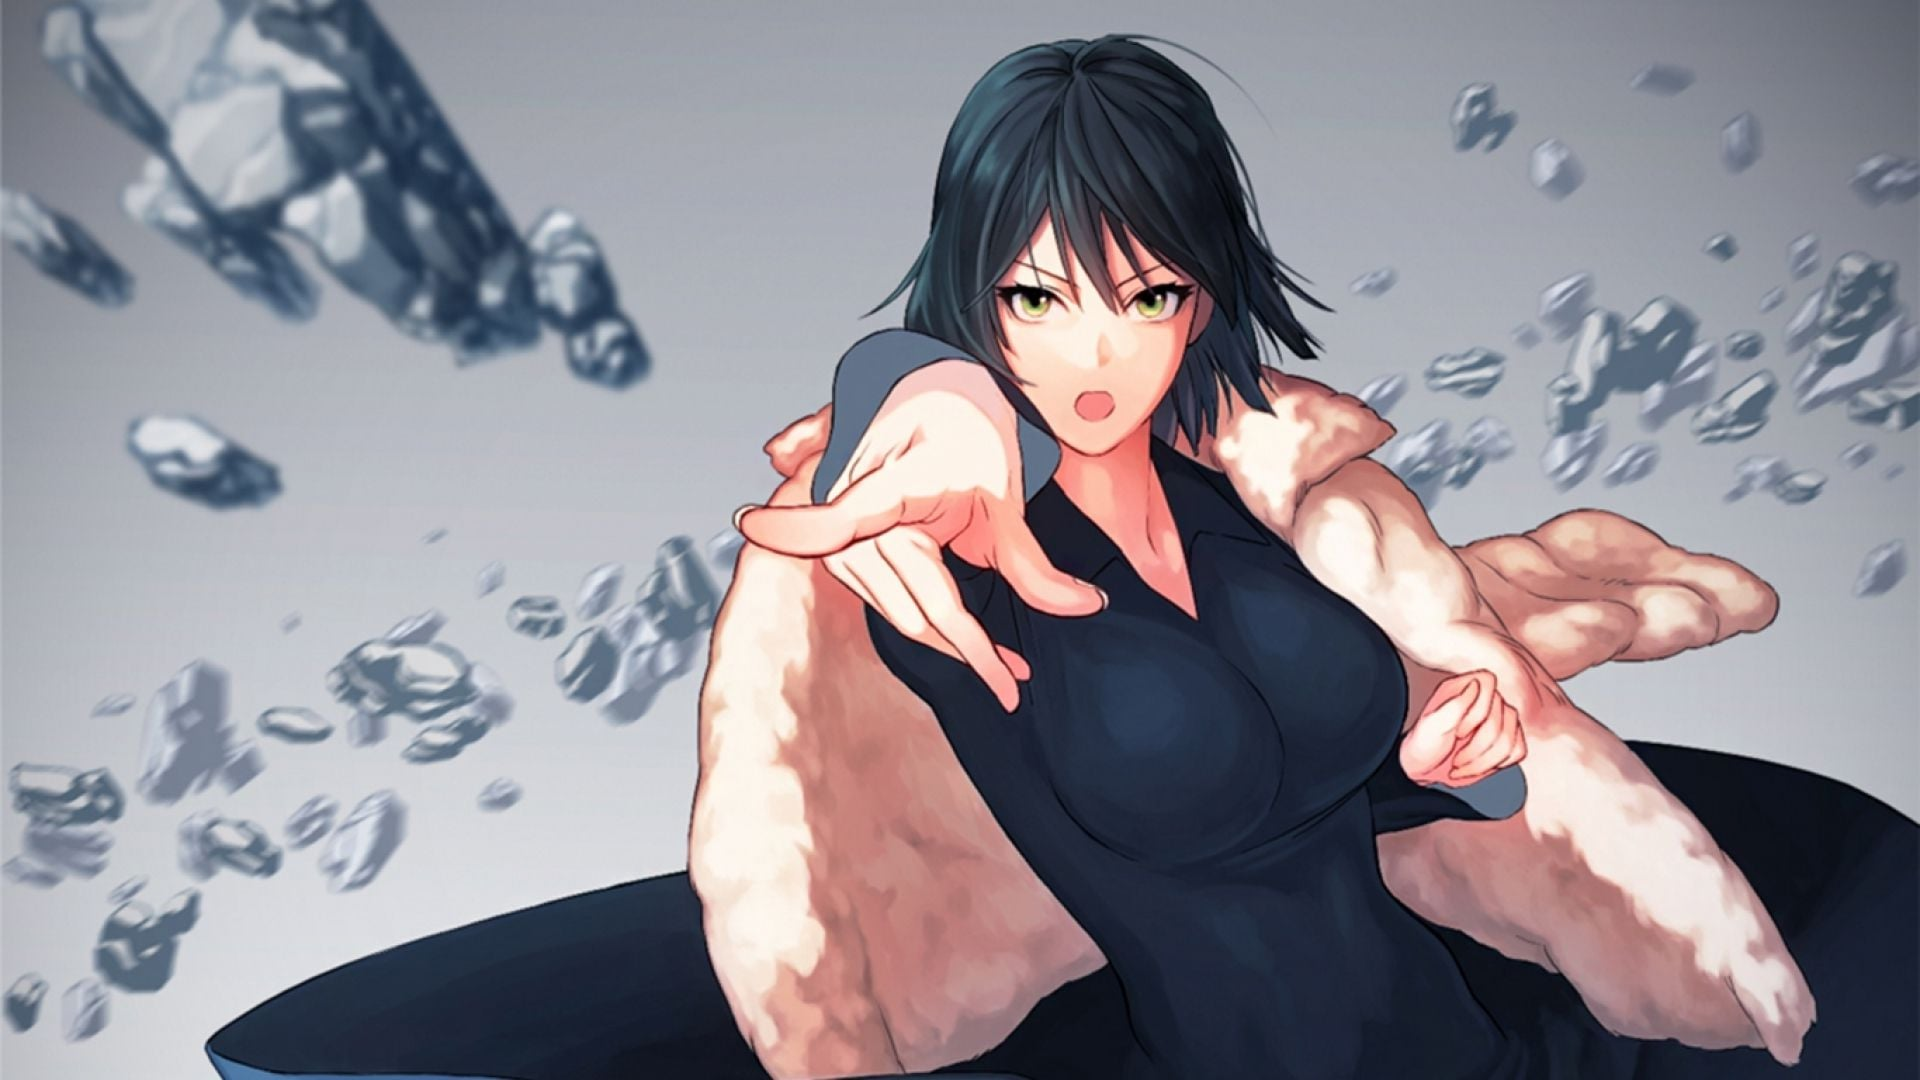 Fubuki One Punch Man Wallpapers Hd For Desktop Backgrounds